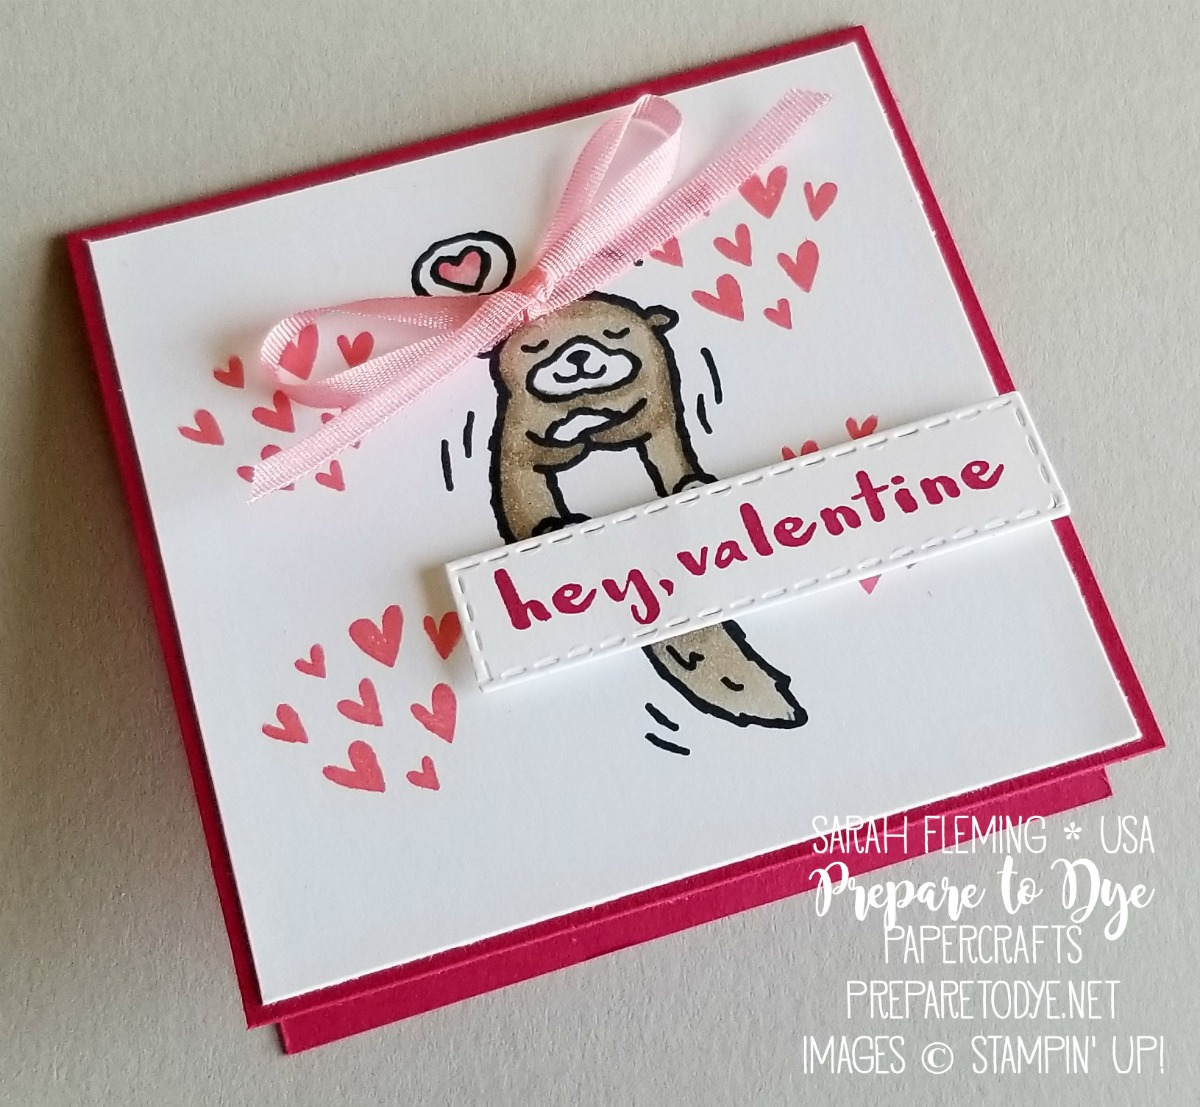 Stampin' Up! handmade Valentine's treat holder treat box and gift tag - Hey Love stamps with Little Elephant stamps, Stitched Shapes framelits, Rectangle Stitched framelits, All My Love Ribbon Combo Pack, Stampin' Blends alcohol markers - Sarah Fleming - Prepare to Dye Papercrafts